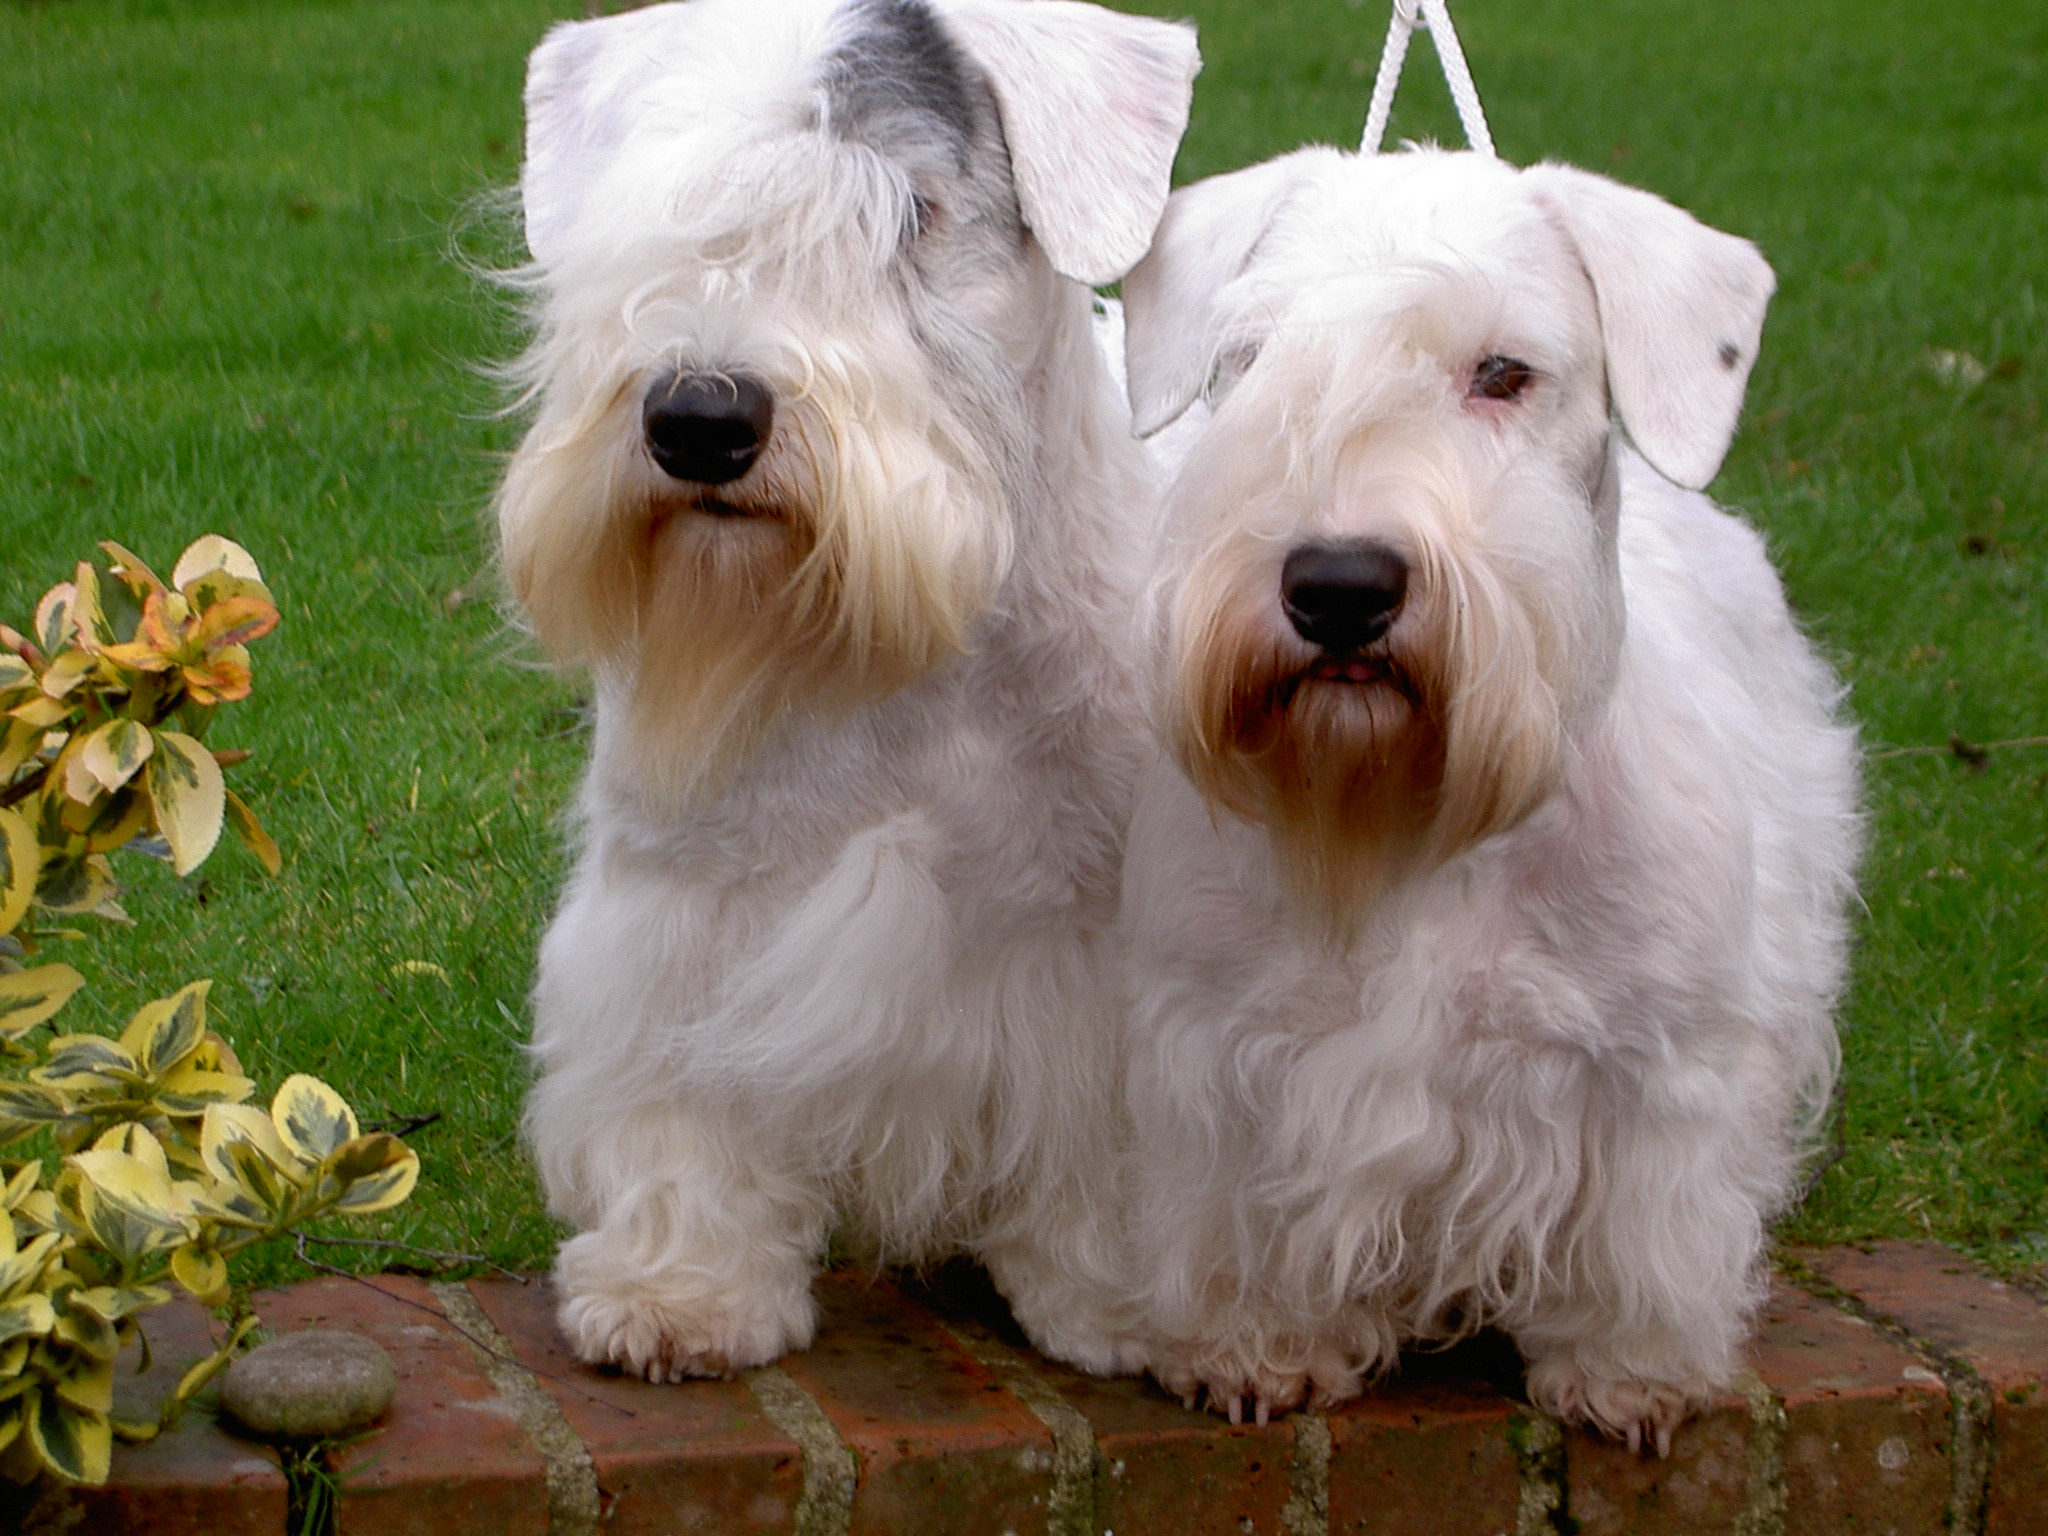 Sealyham Terrier Dog: Sealyham Cute Sealyham Terrier Dogs Breed